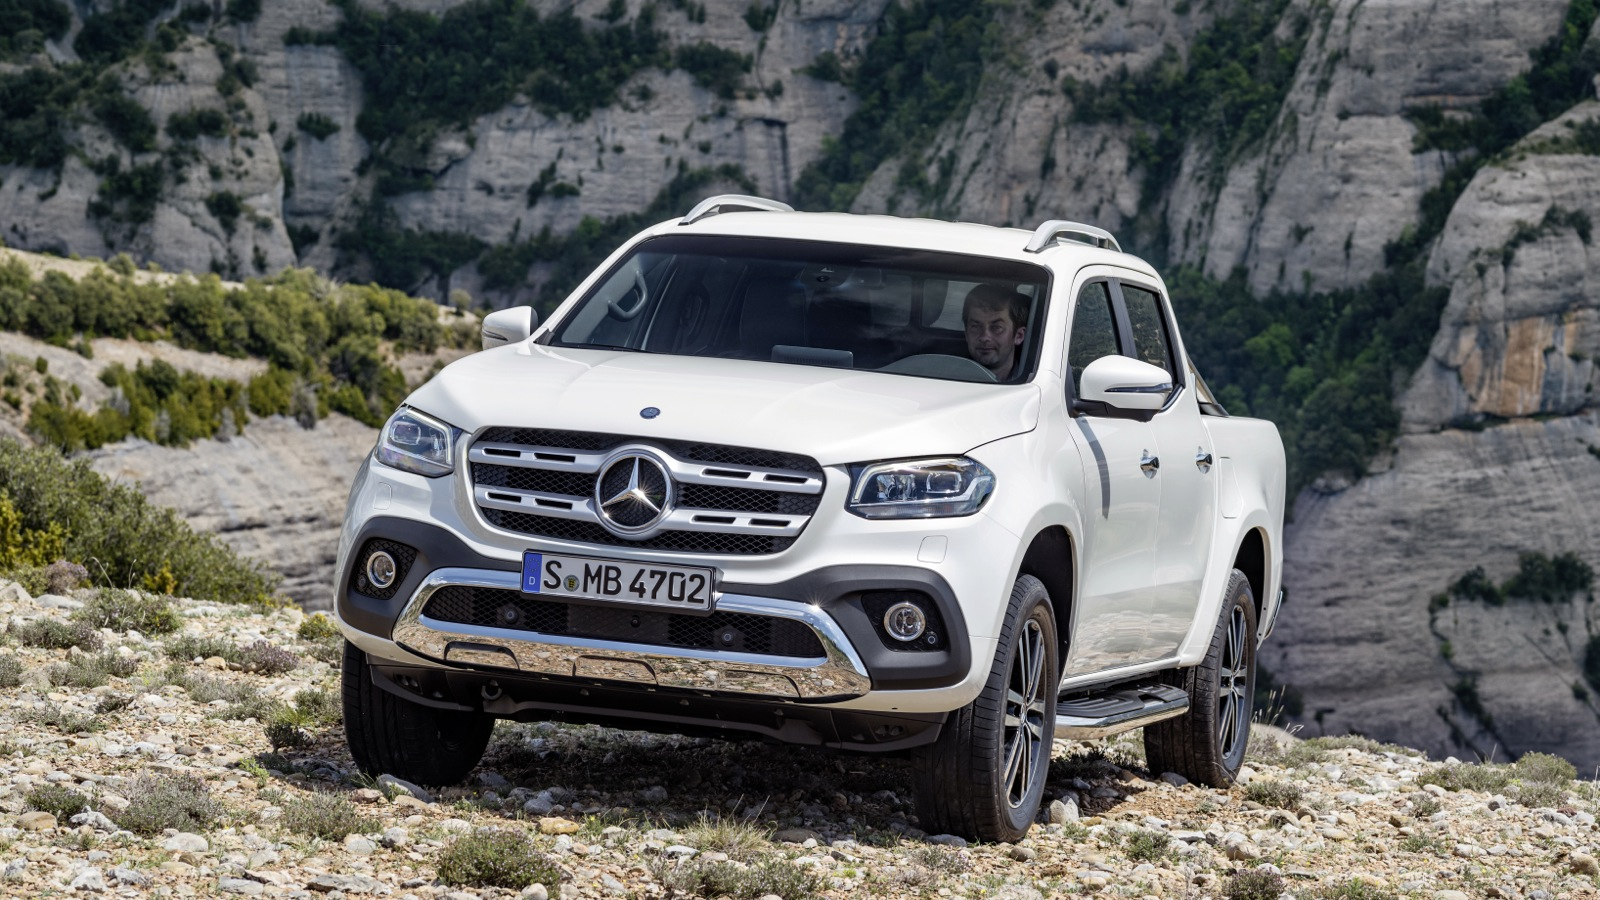 2018 mercedes benz x class pricing and specs photos ForMercedes Benz X Class Price